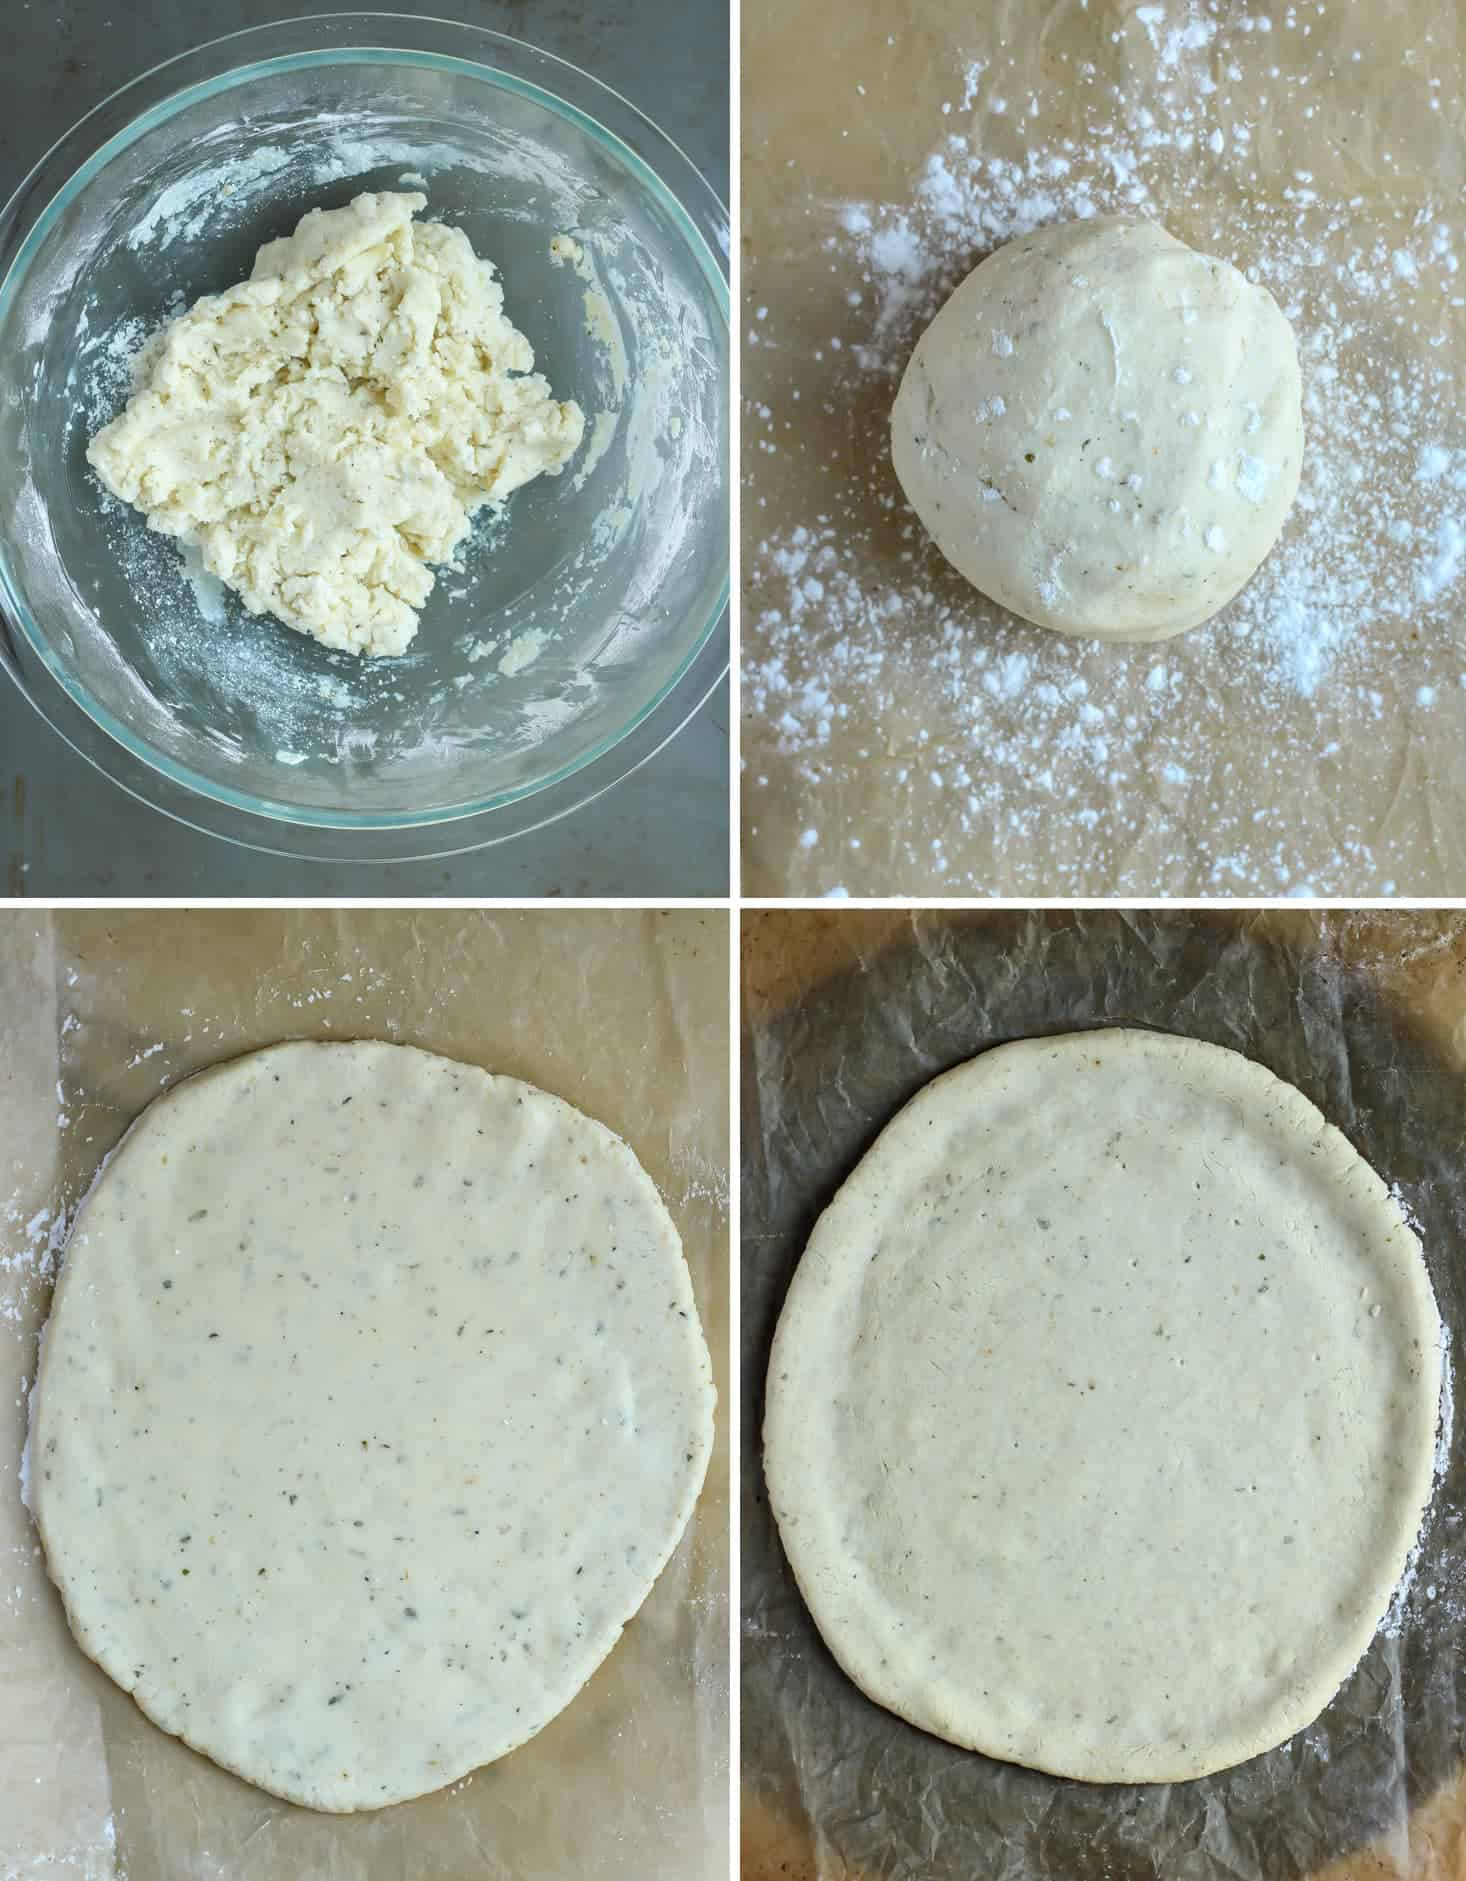 Simple steps and one bowl for a paleo pizza crust! Using tapioca flour and a little bit of coconut flour making this pizza crust nut free and low carb.